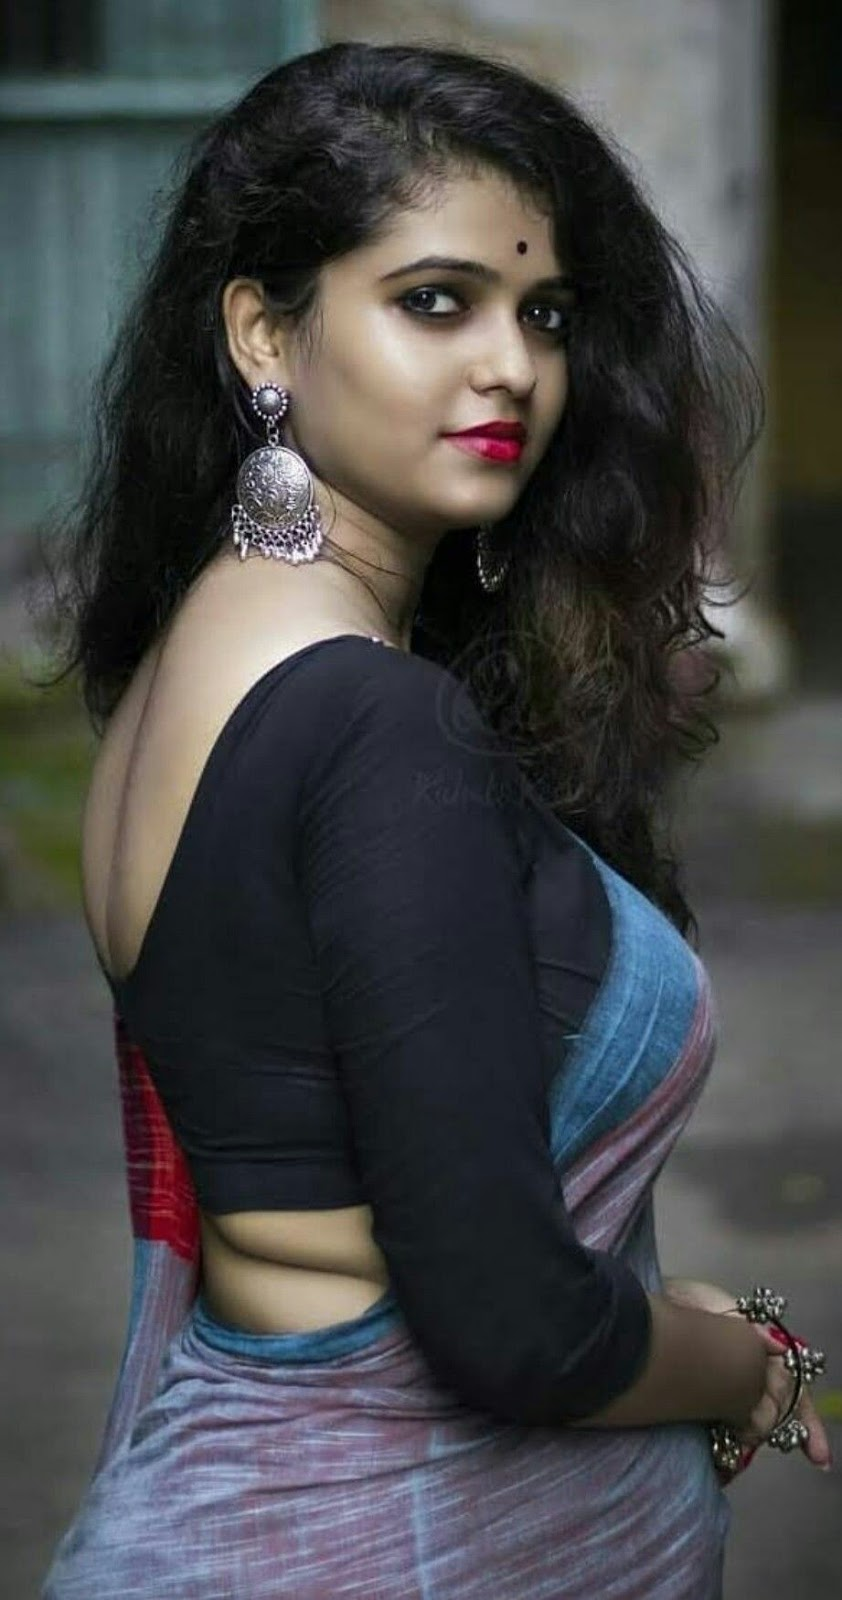 Hot Indian Women In Saree Exclusive And Ultimate Photo -5852